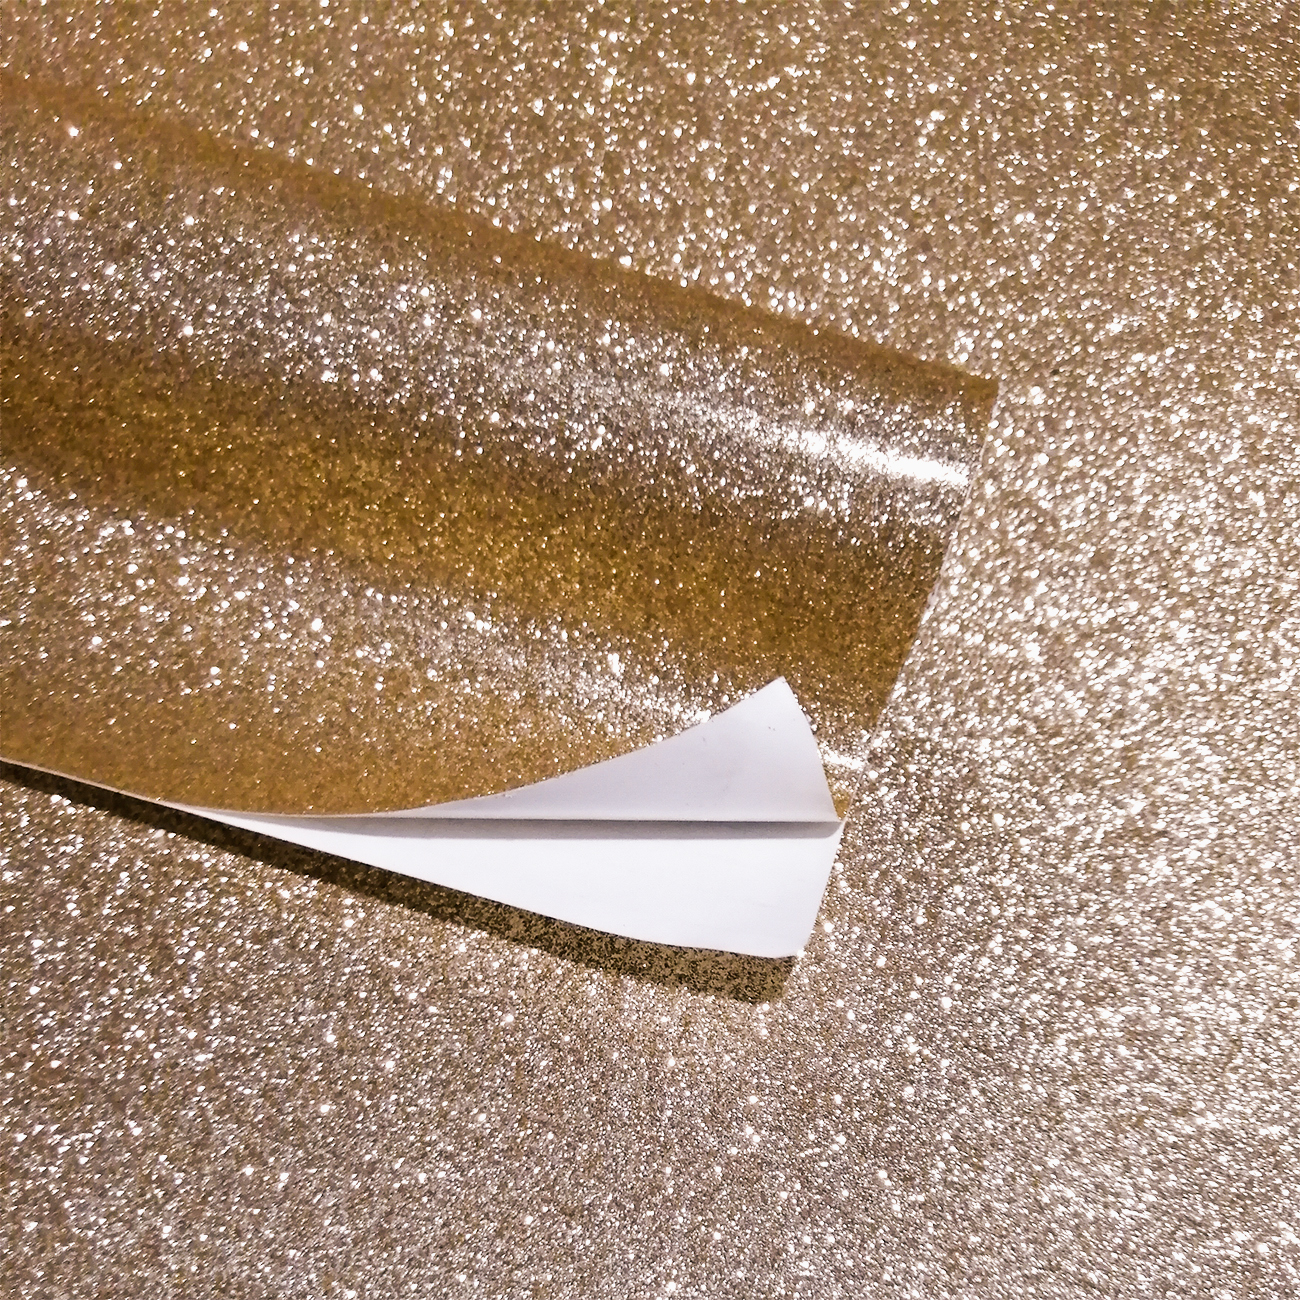 Self Adhesive Glitter Wallpaper Contact Paper Peel And Sticker Bling Wallcovering